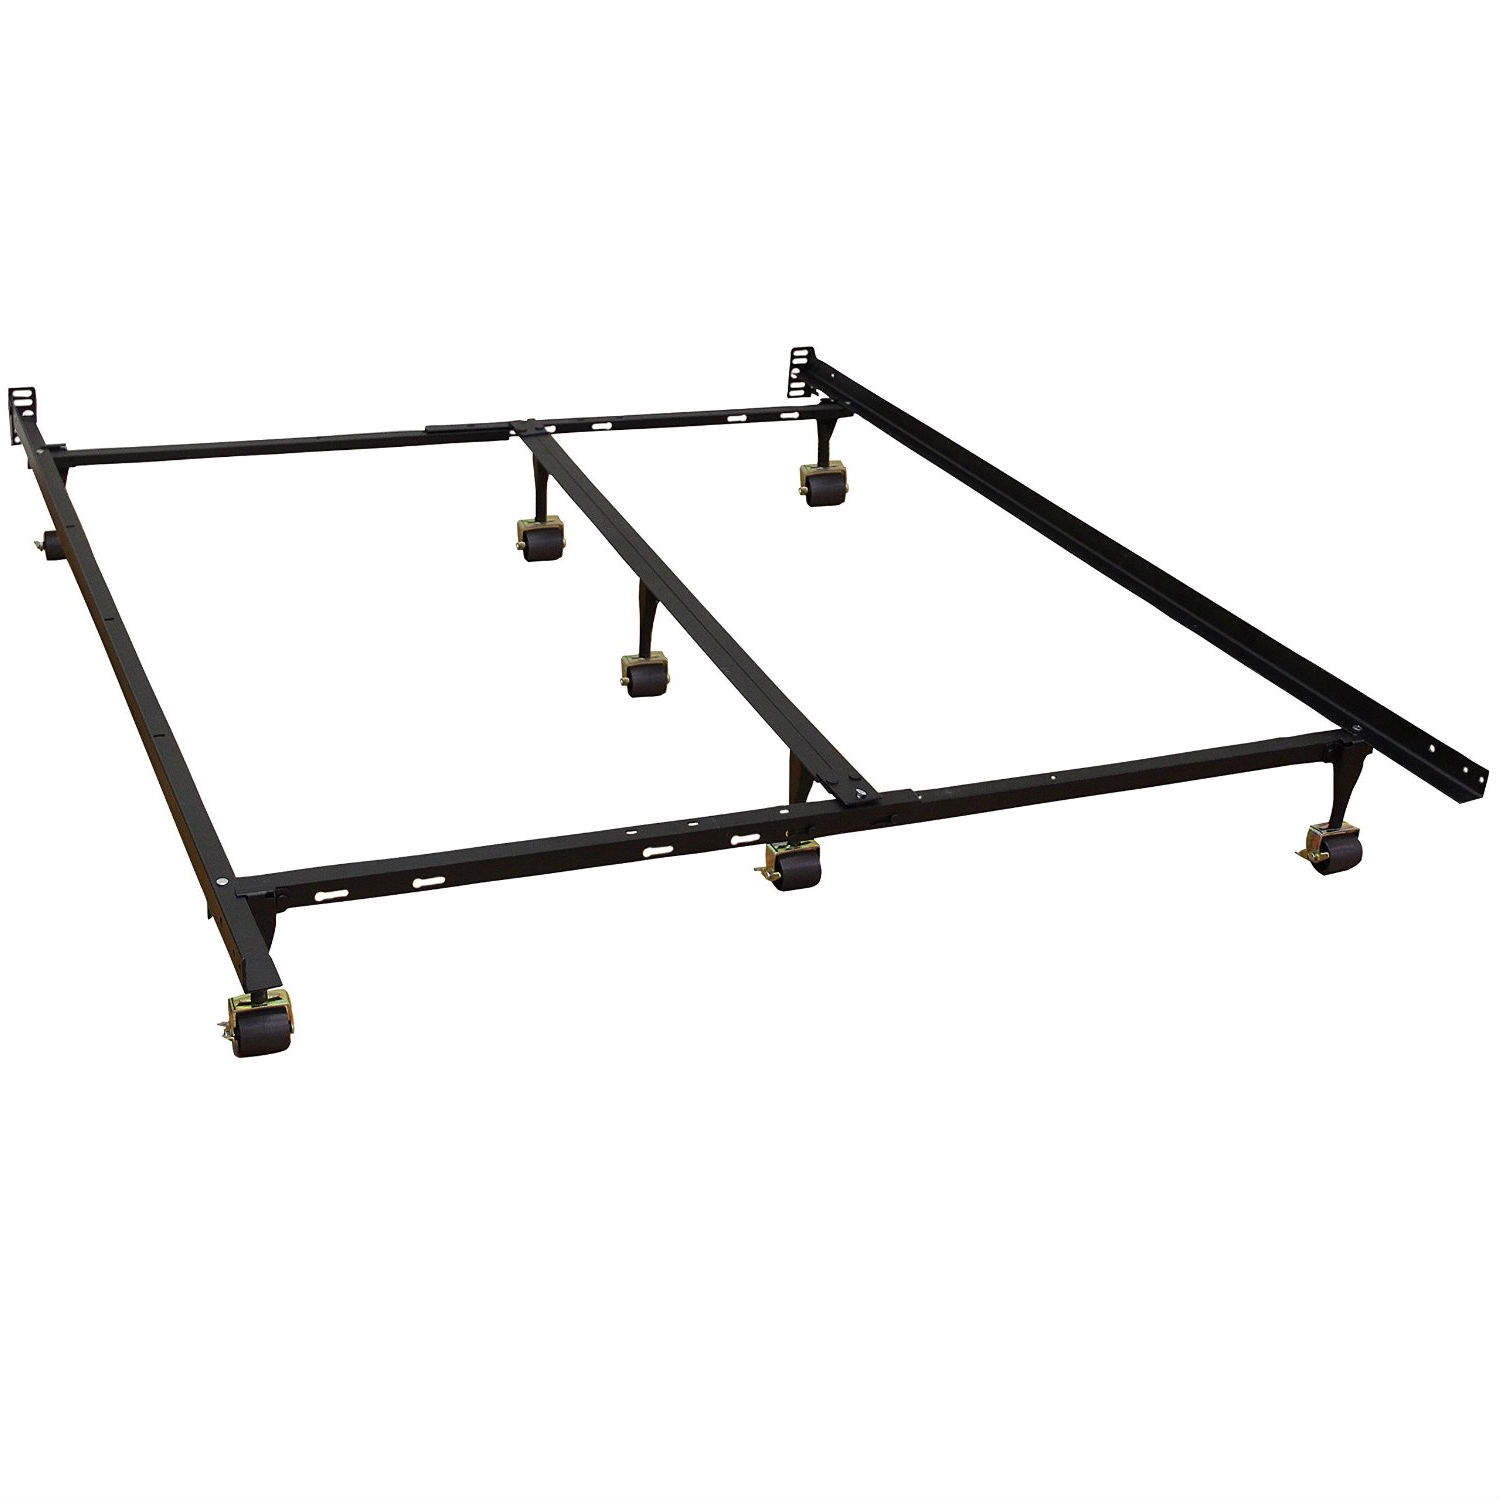 Full Size Sturdy Metal Bed Frame With 7 Legs Locking Casters And Headboard Brackets